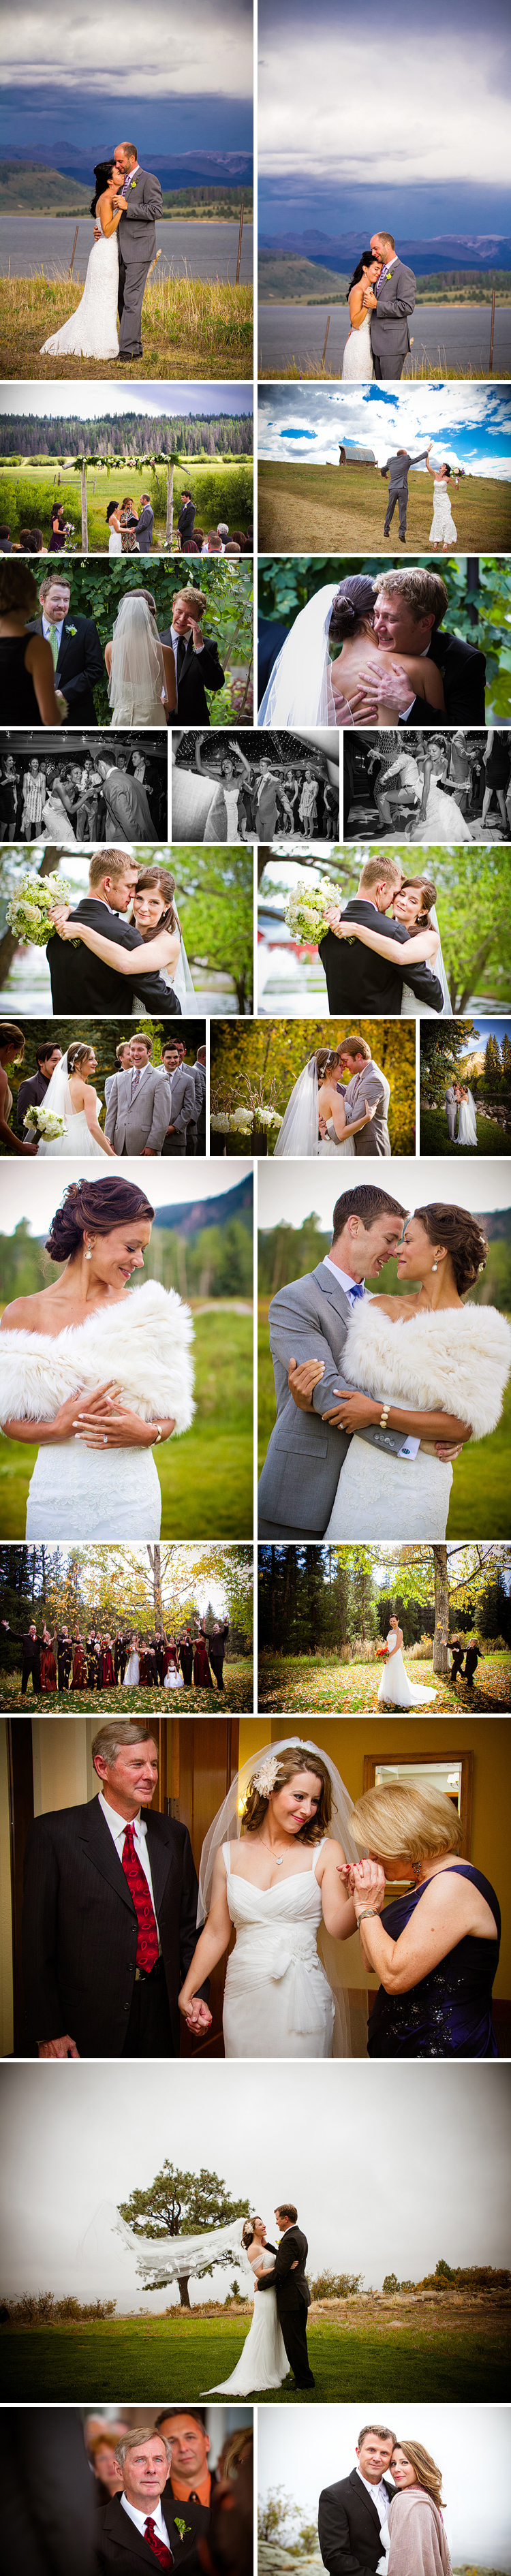 denver-weddings-2012-colorado-wedding-photography-3